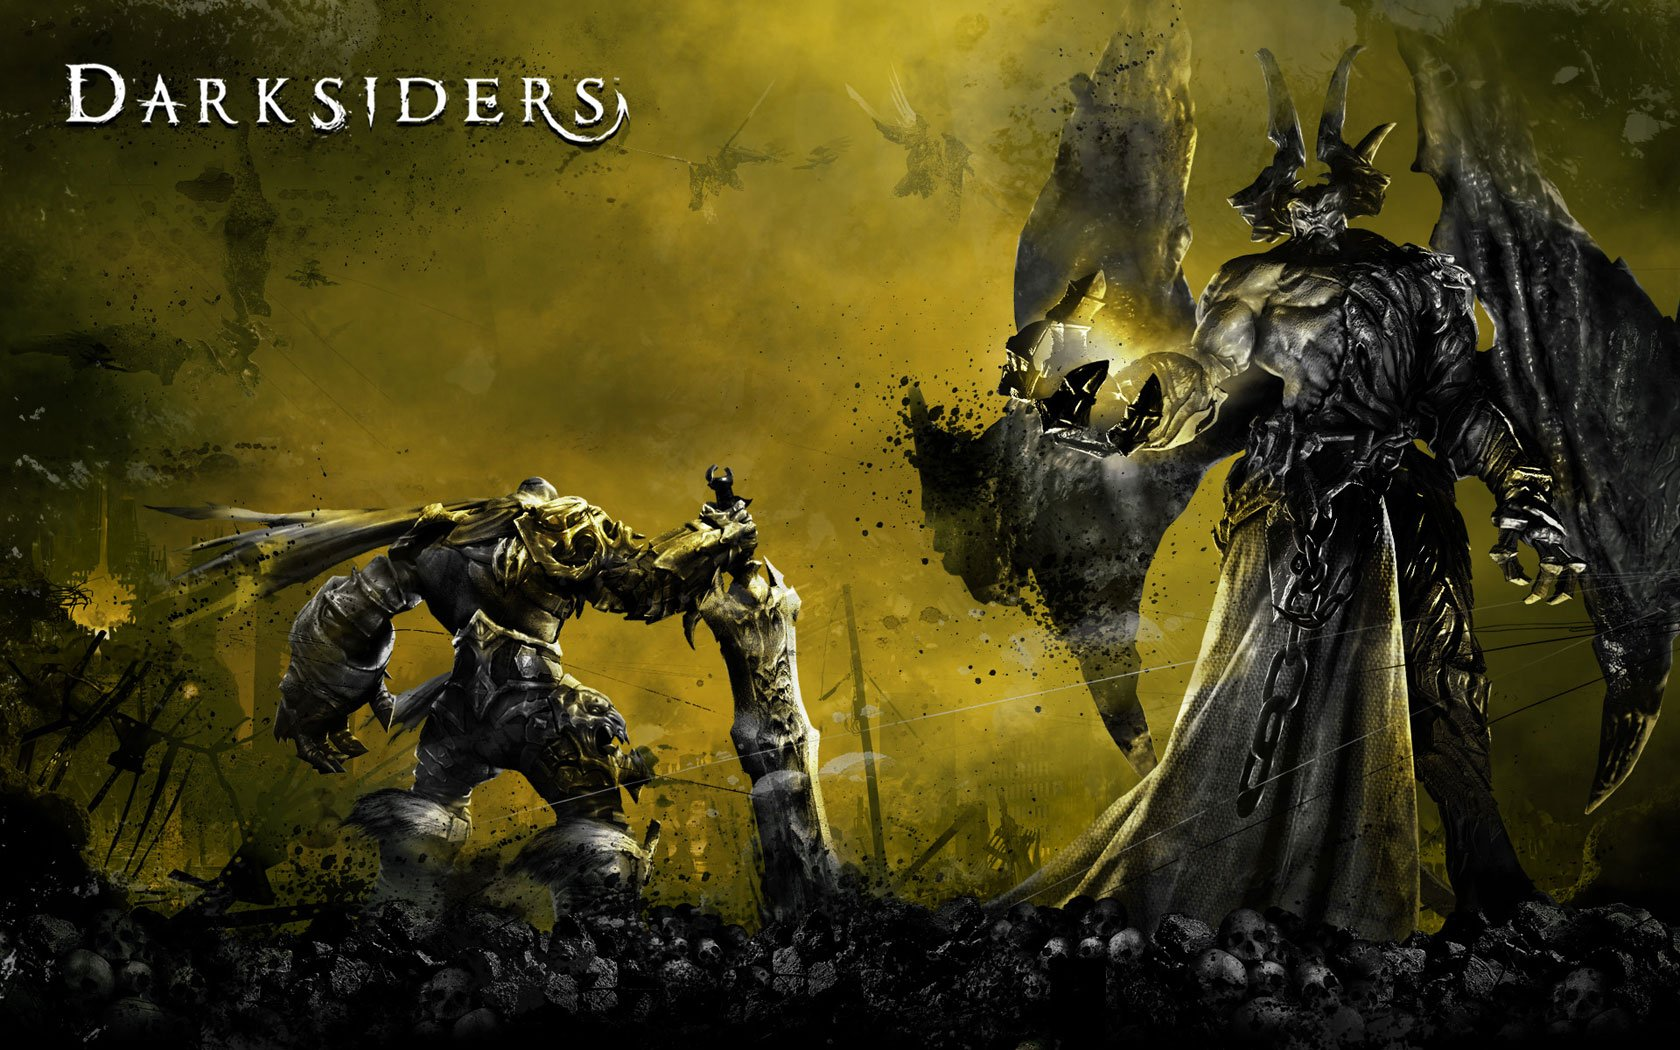 Pin Darksiders Wallpapers Hd 1680x1050